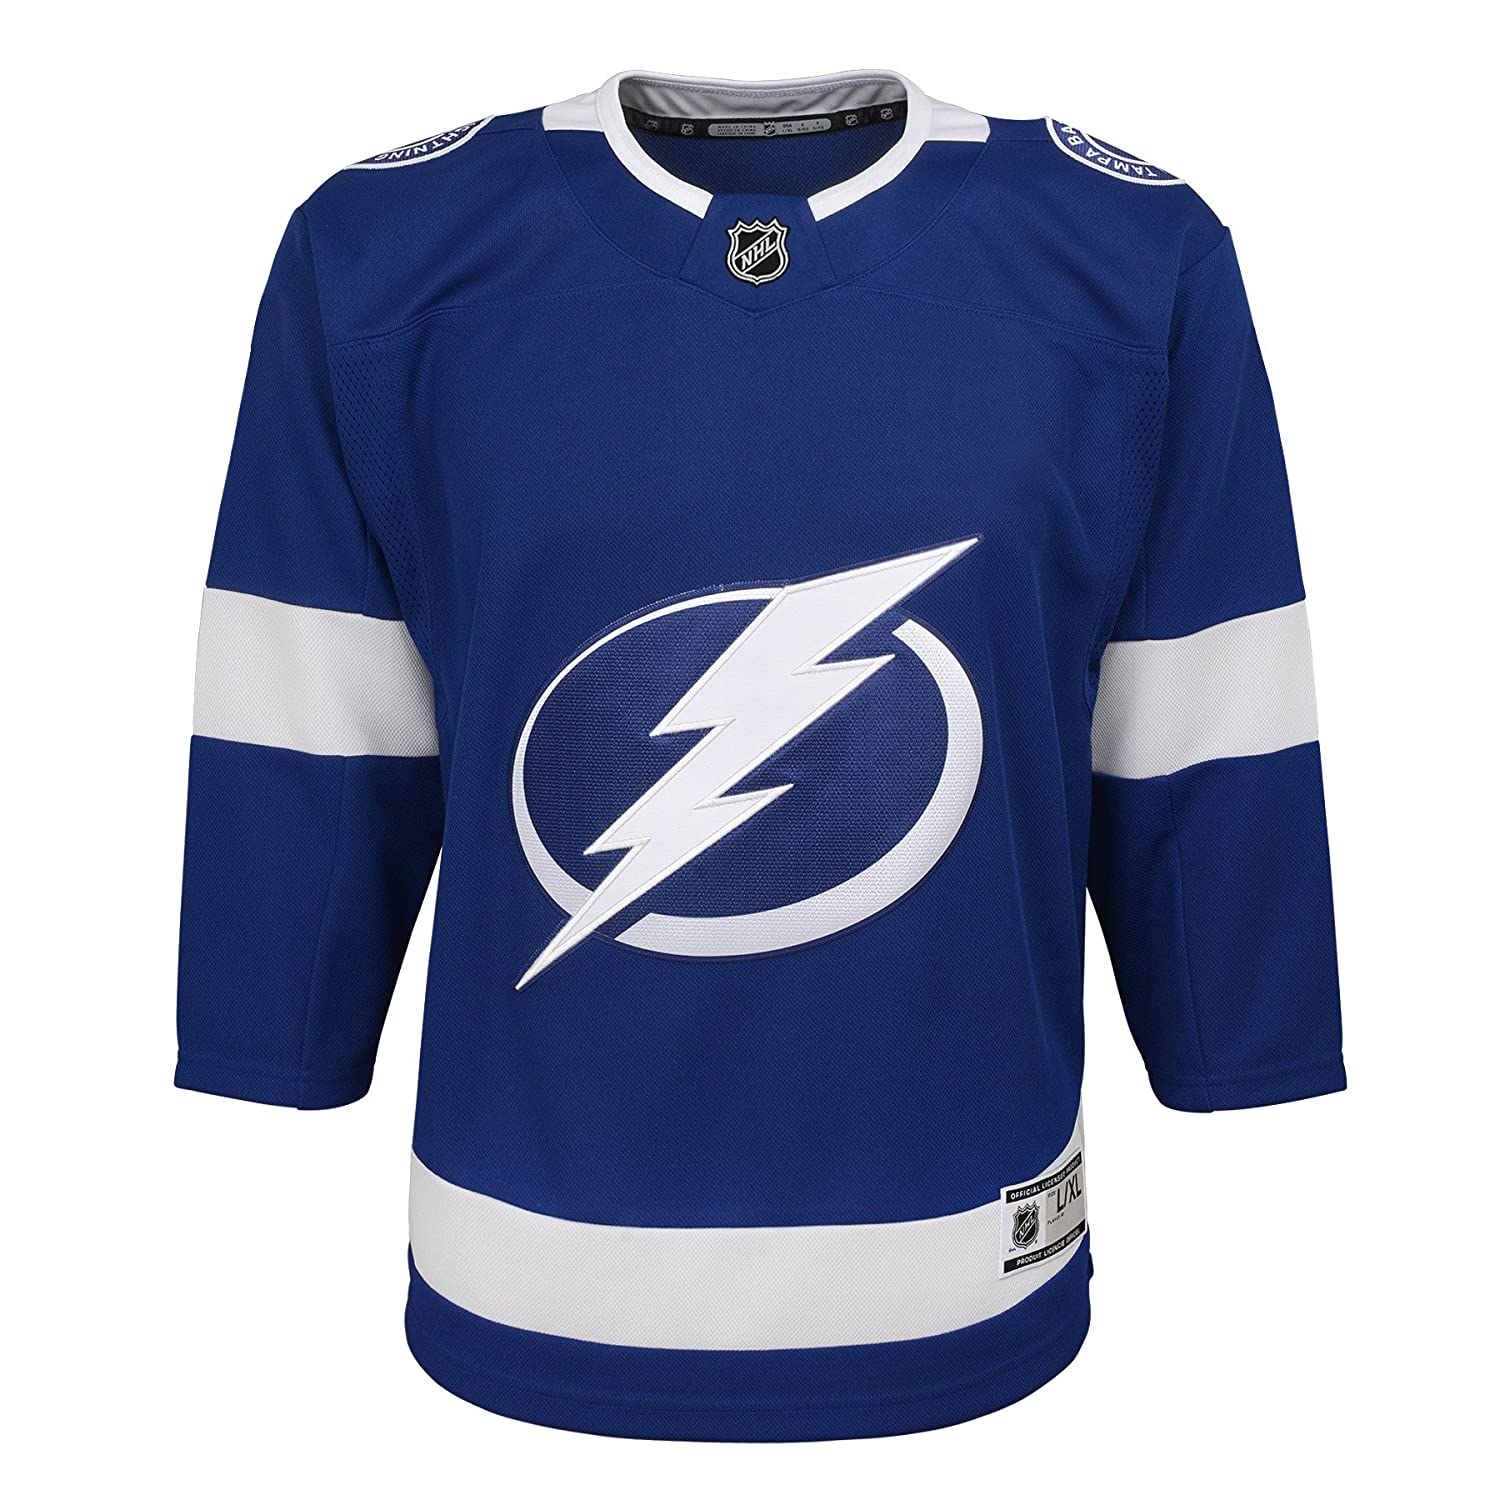 OuterStuff Tampa Bay Lightning NHL NHL Youth Premier Blank Jersey